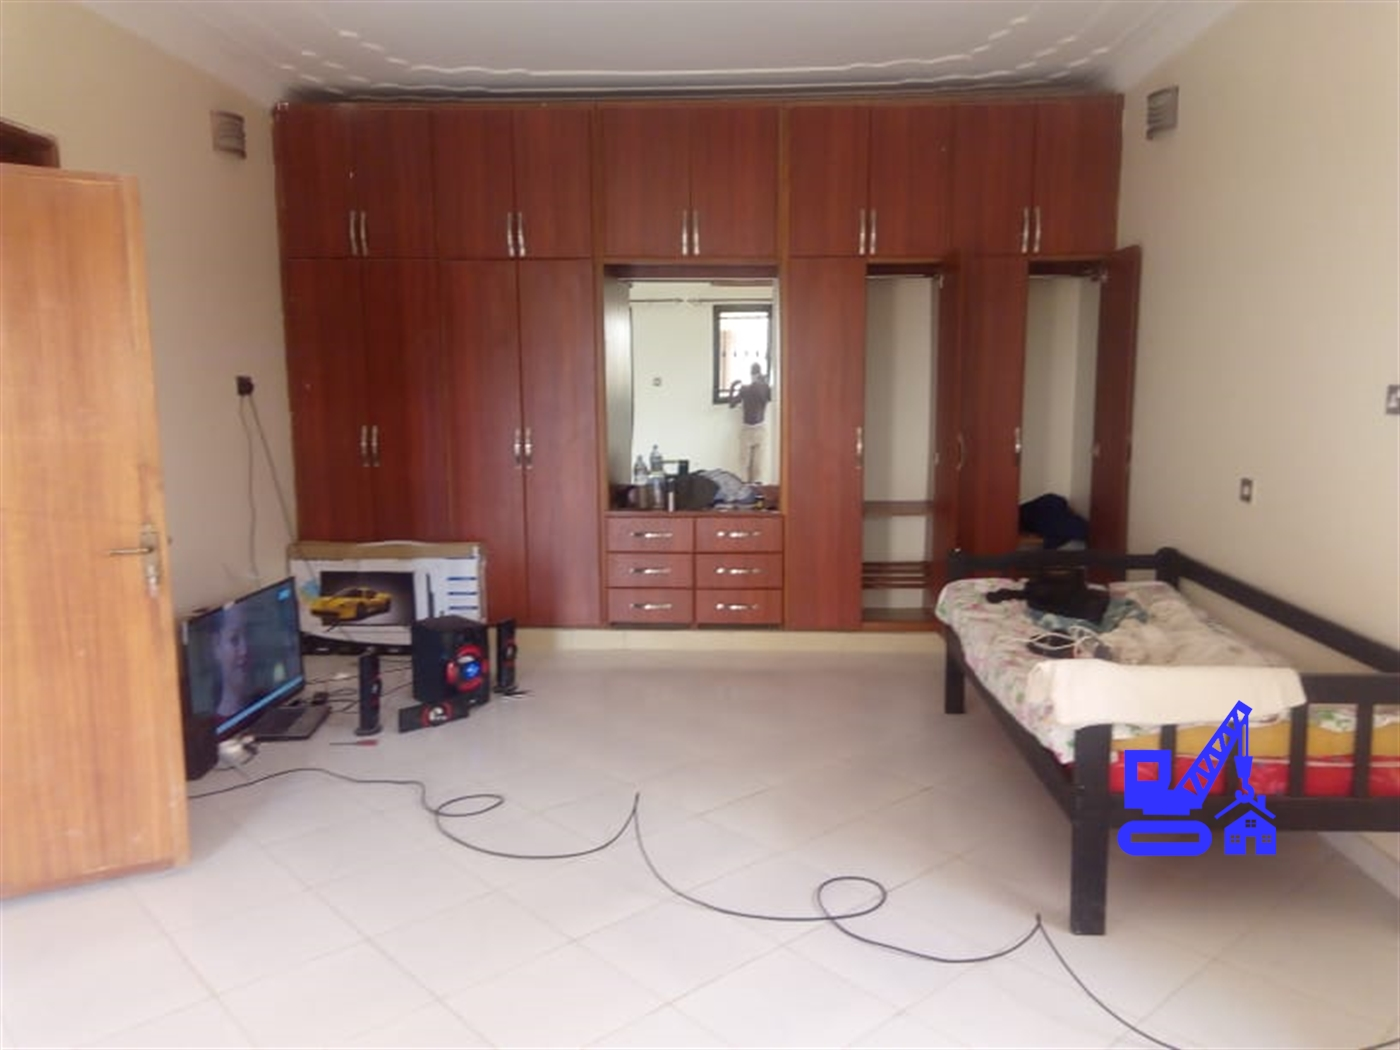 Storyed house for rent in Bweyogerere Wakiso